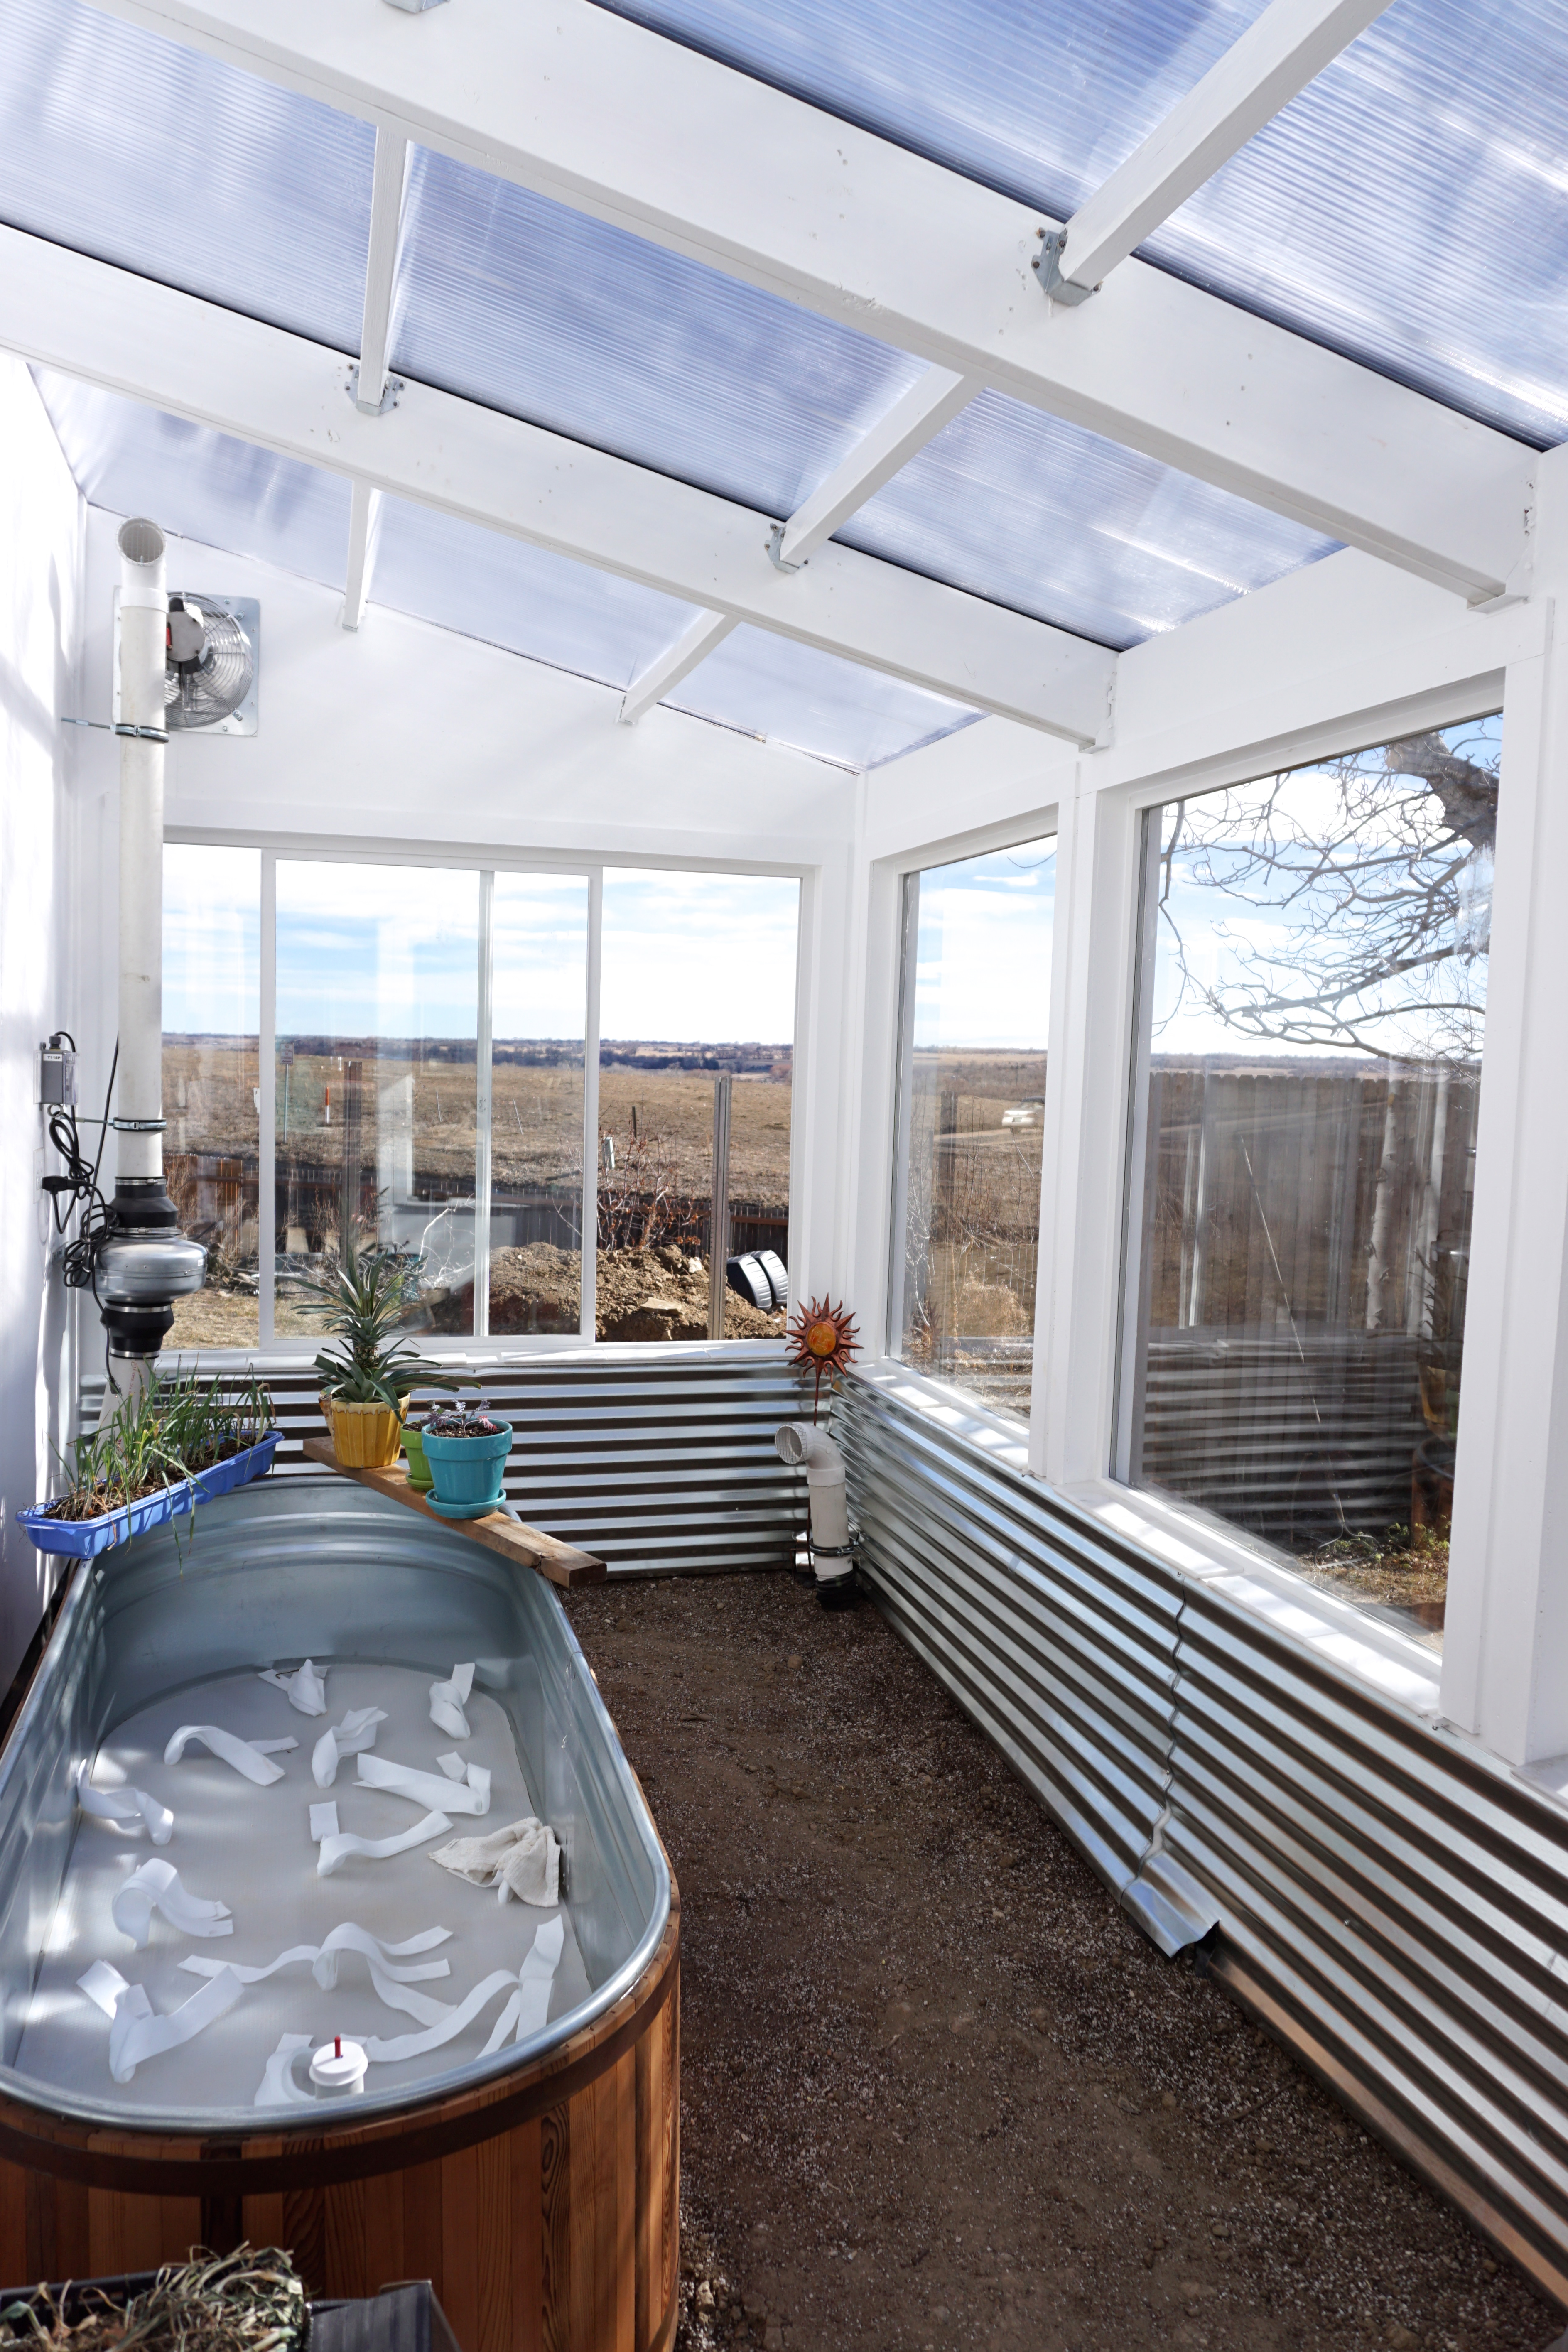 12 x 16 solar greenhouse with self-wicking beds